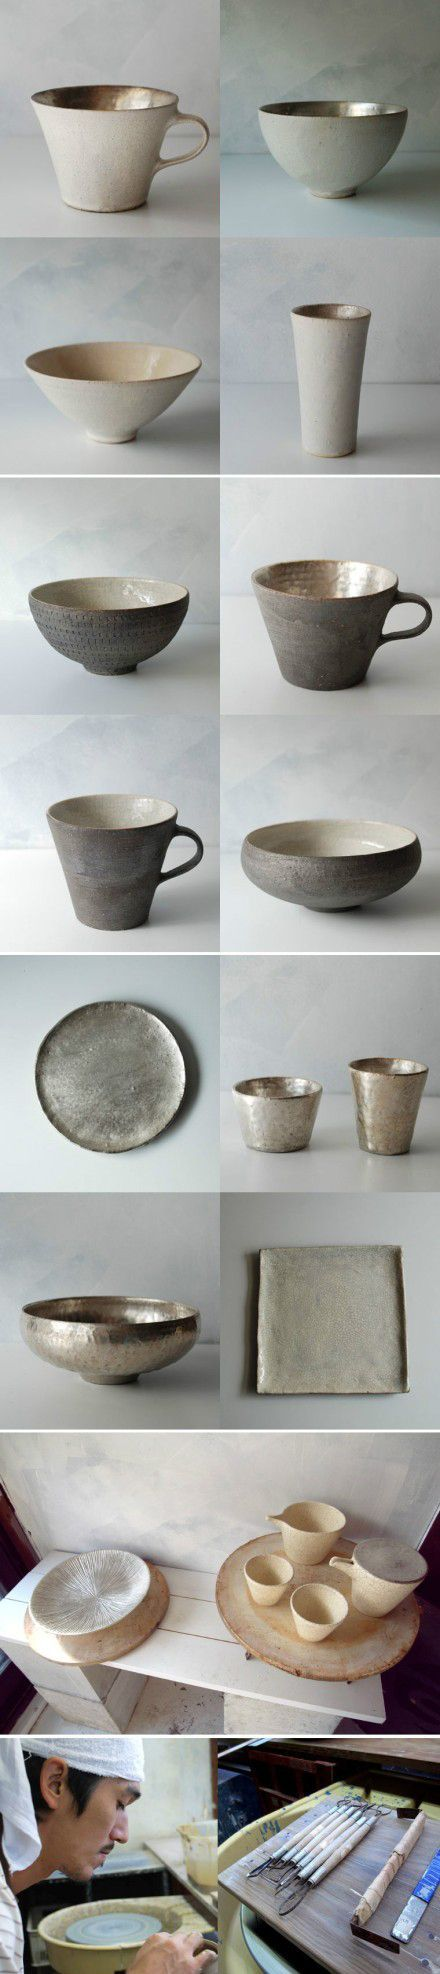 Be it bowls, vases or art, ceramics are in trend for 2015. Japanese Ceramics by barefootstyling #Ceramics: